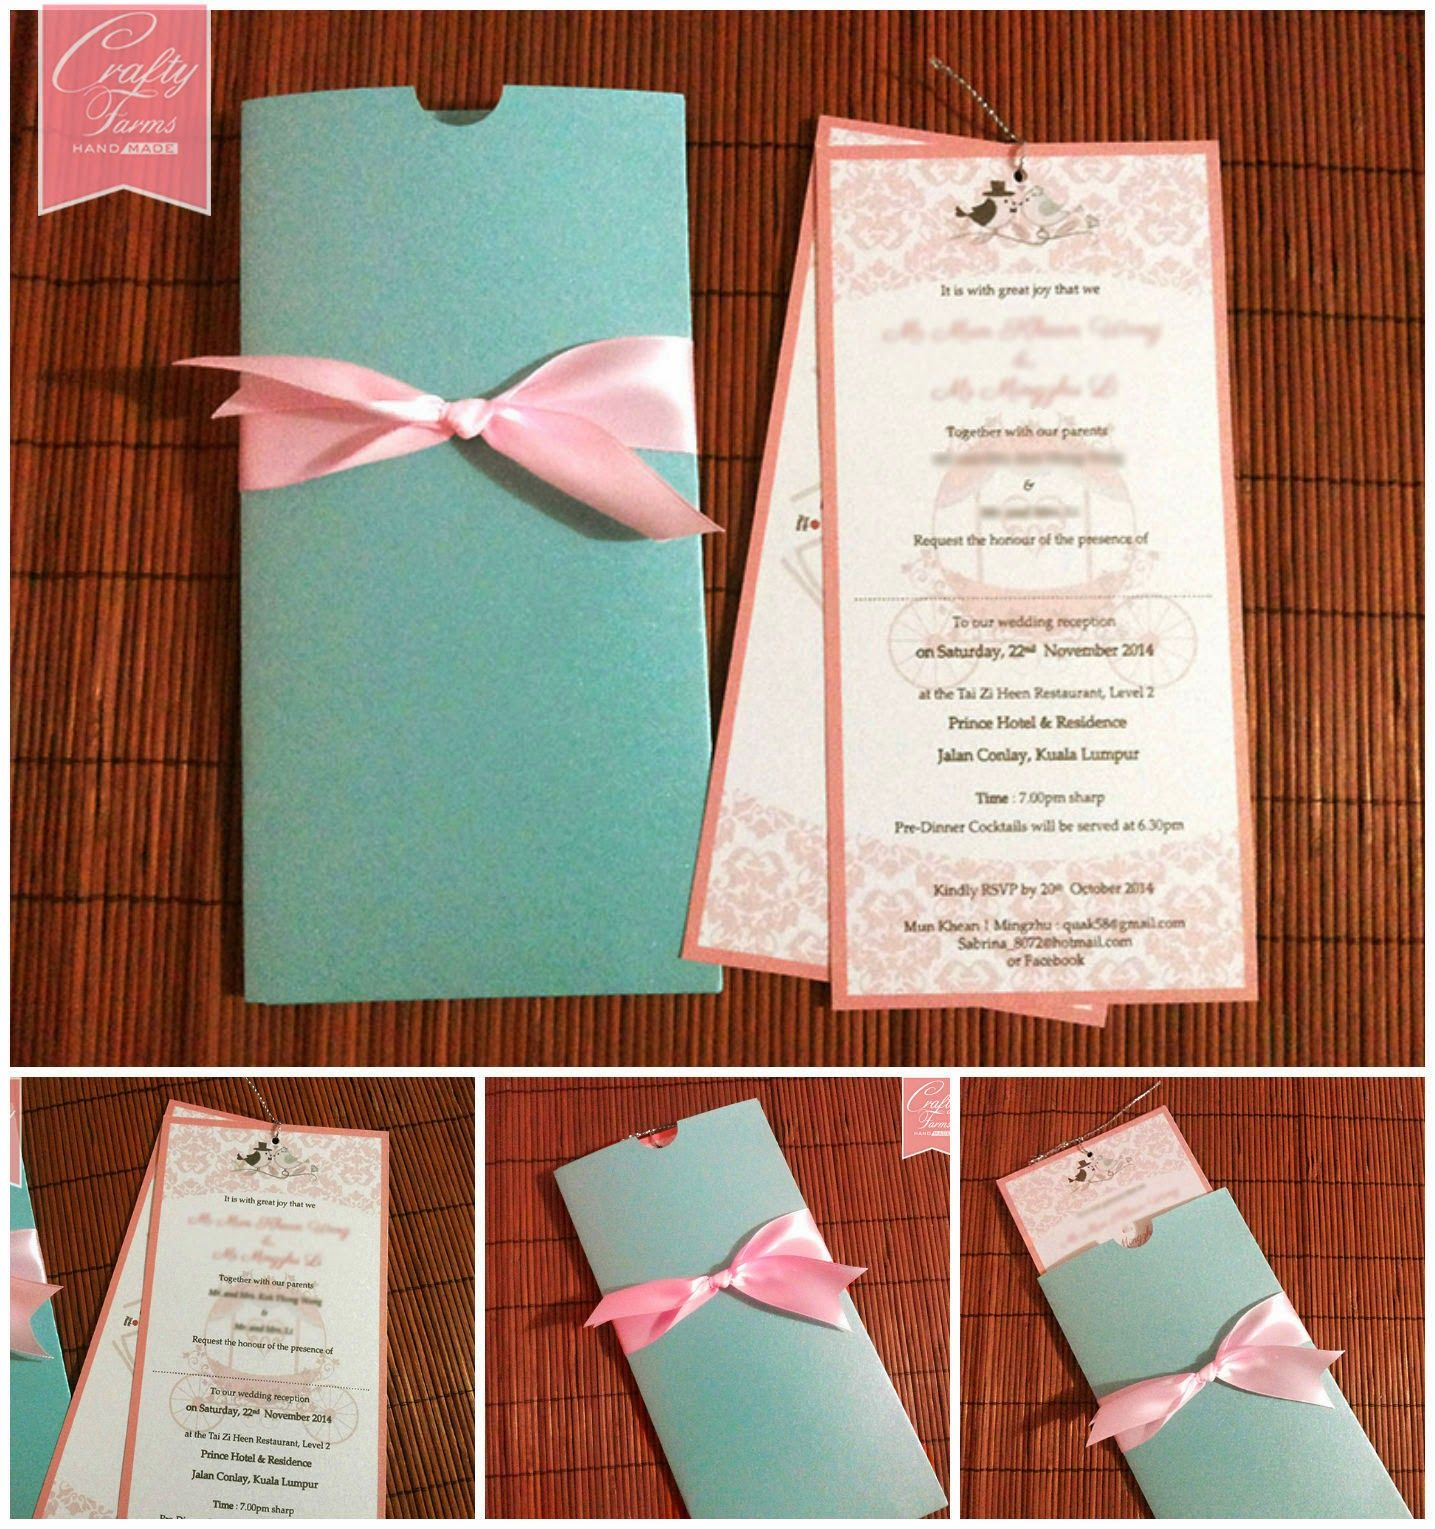 Pastel Themed Pocket Style Wedding Card With Ribbon Knot Wedding Cards Wedding Invitations Wedding Card Design